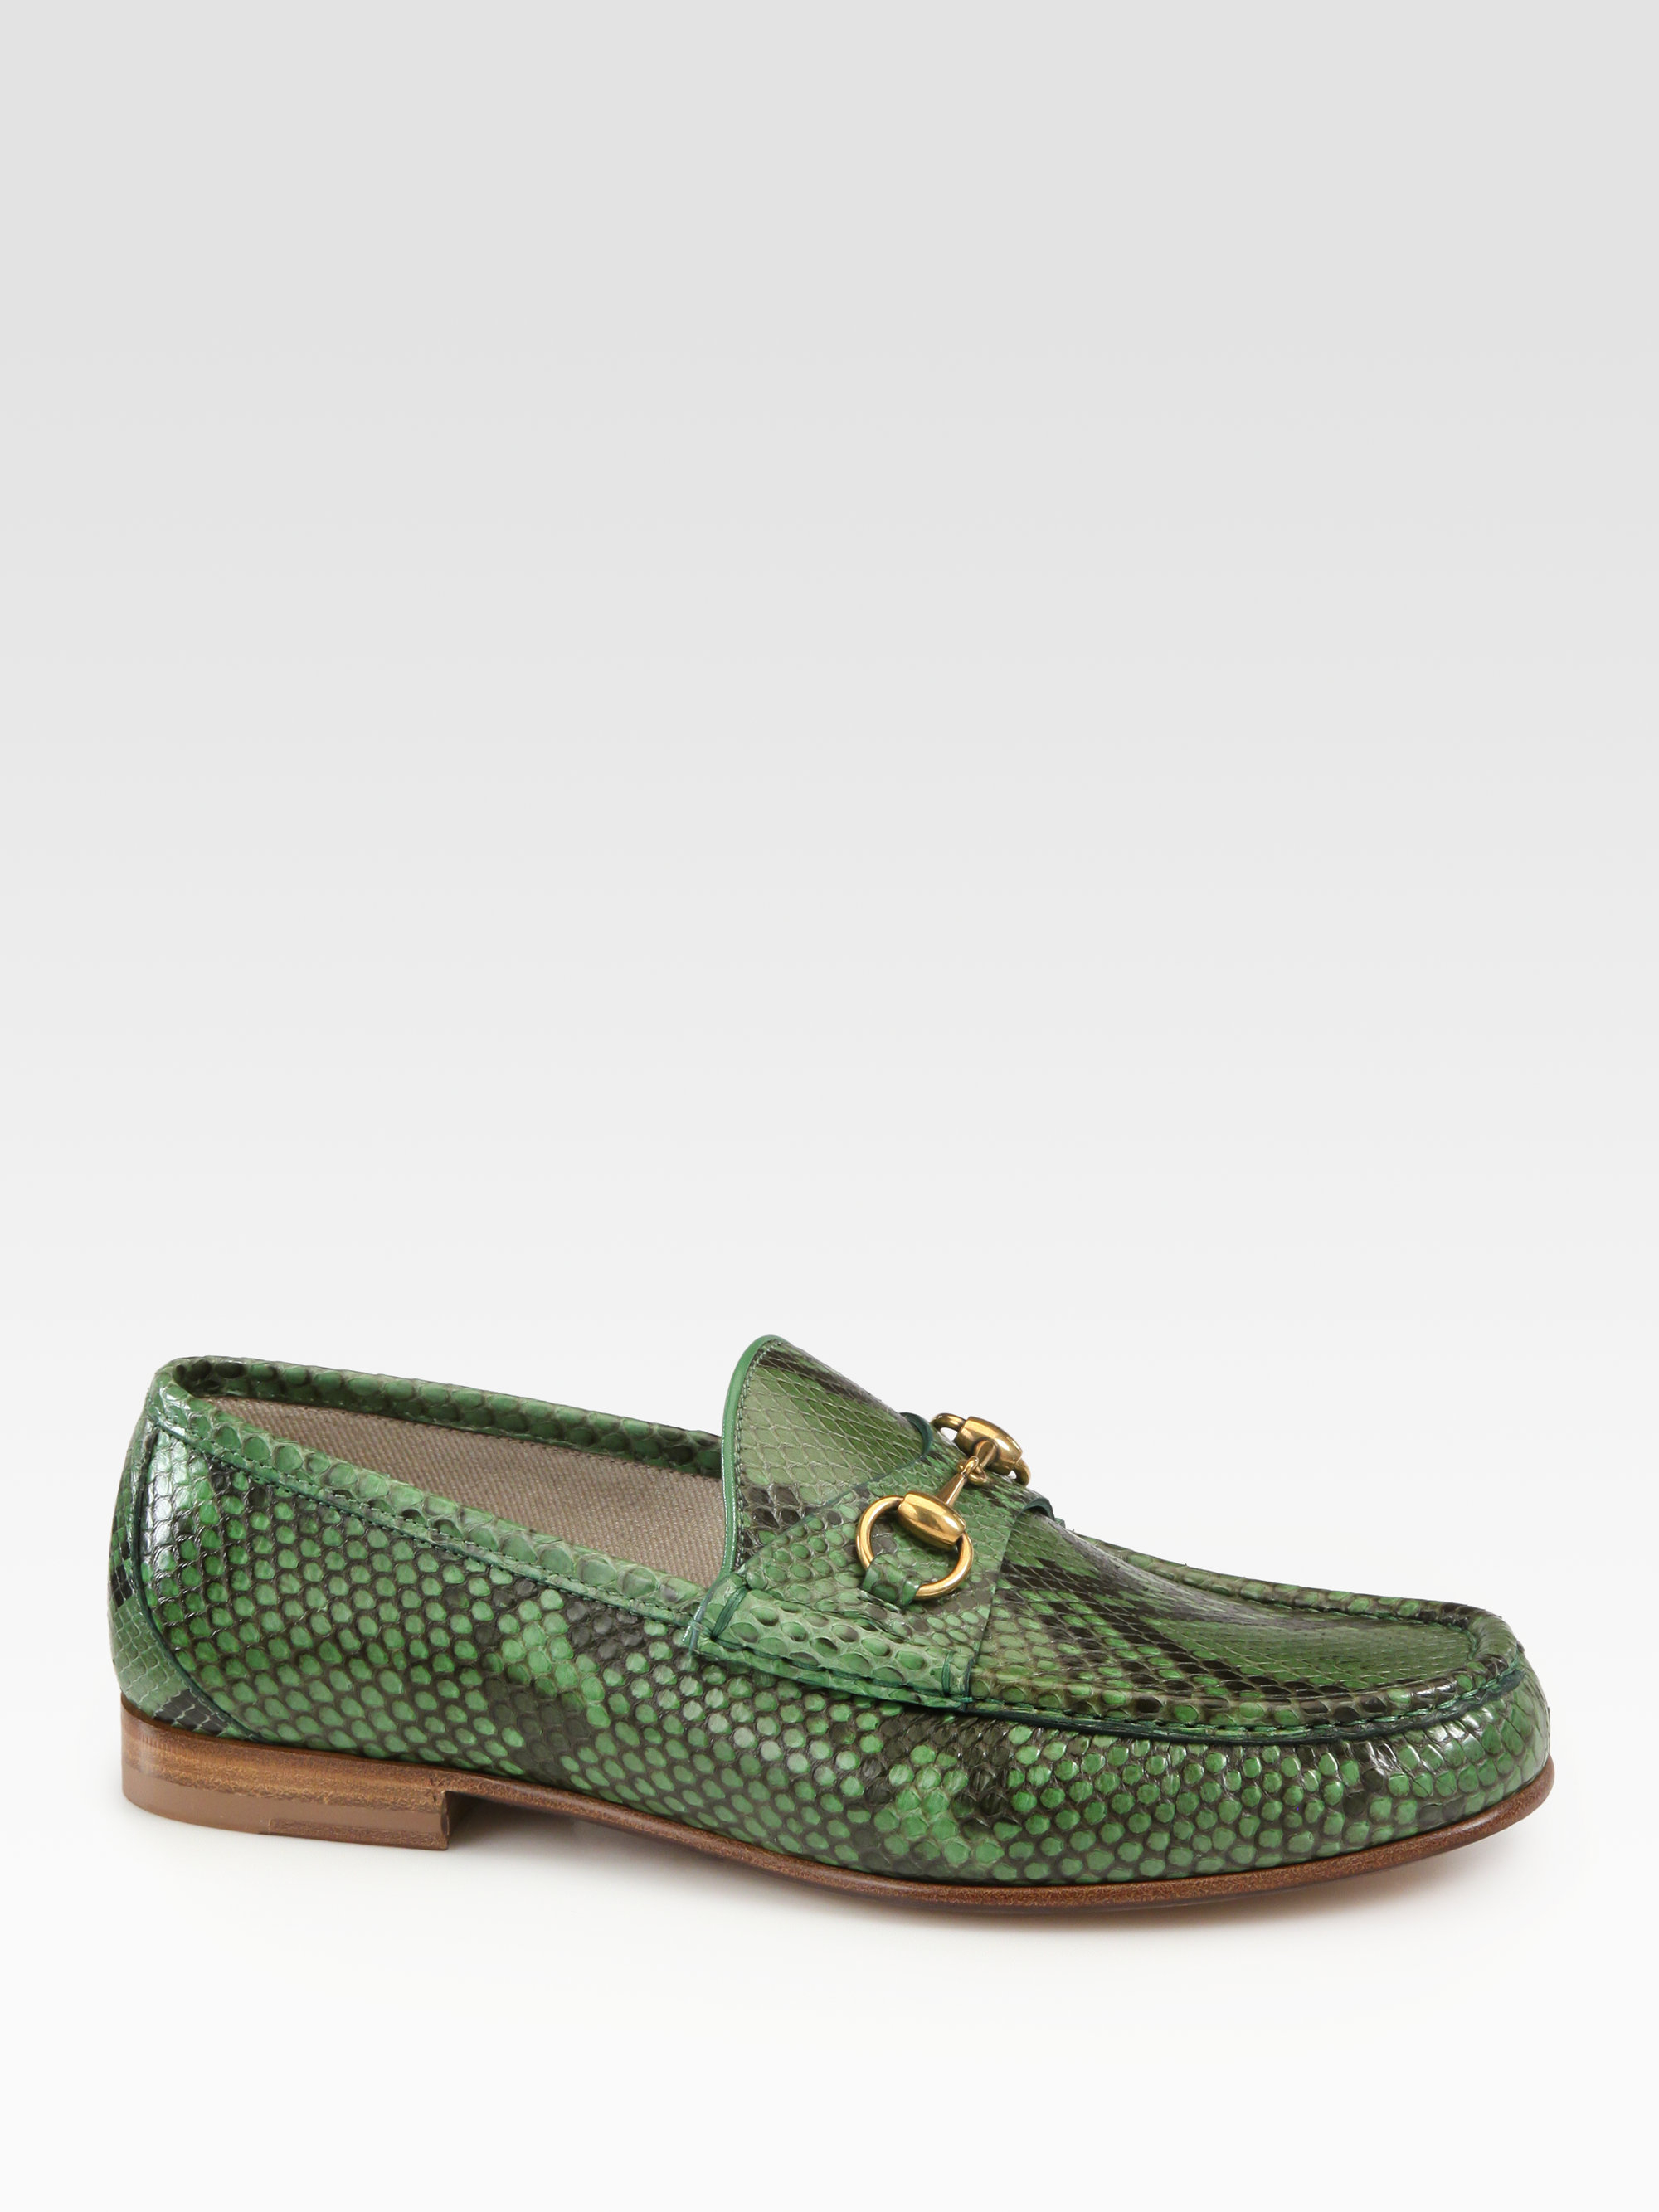 Gucci Green Python Horsebit Loafers for